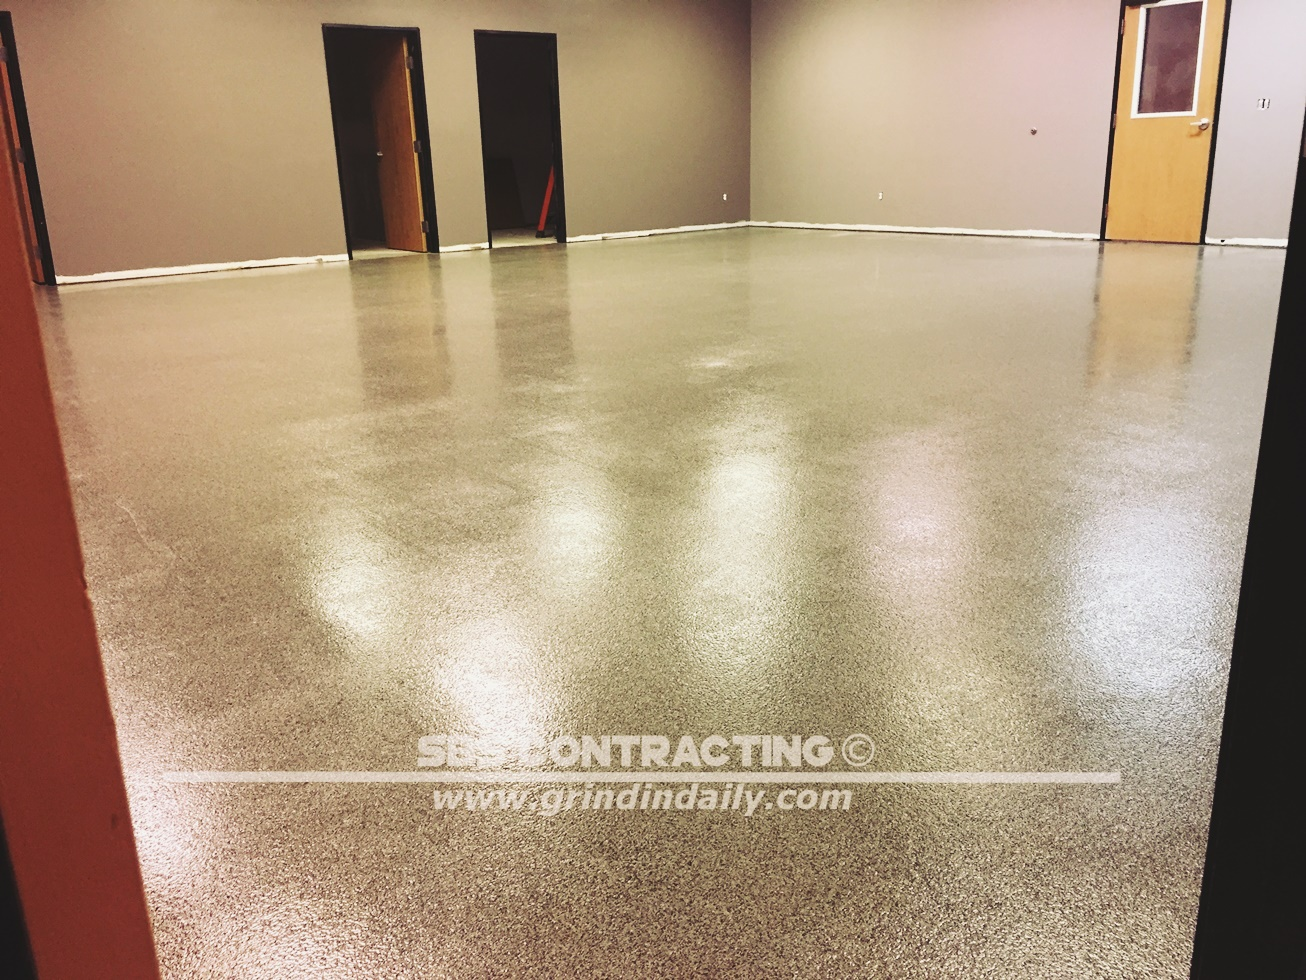 SBS-Contracting-Epoxy-Project-10-01